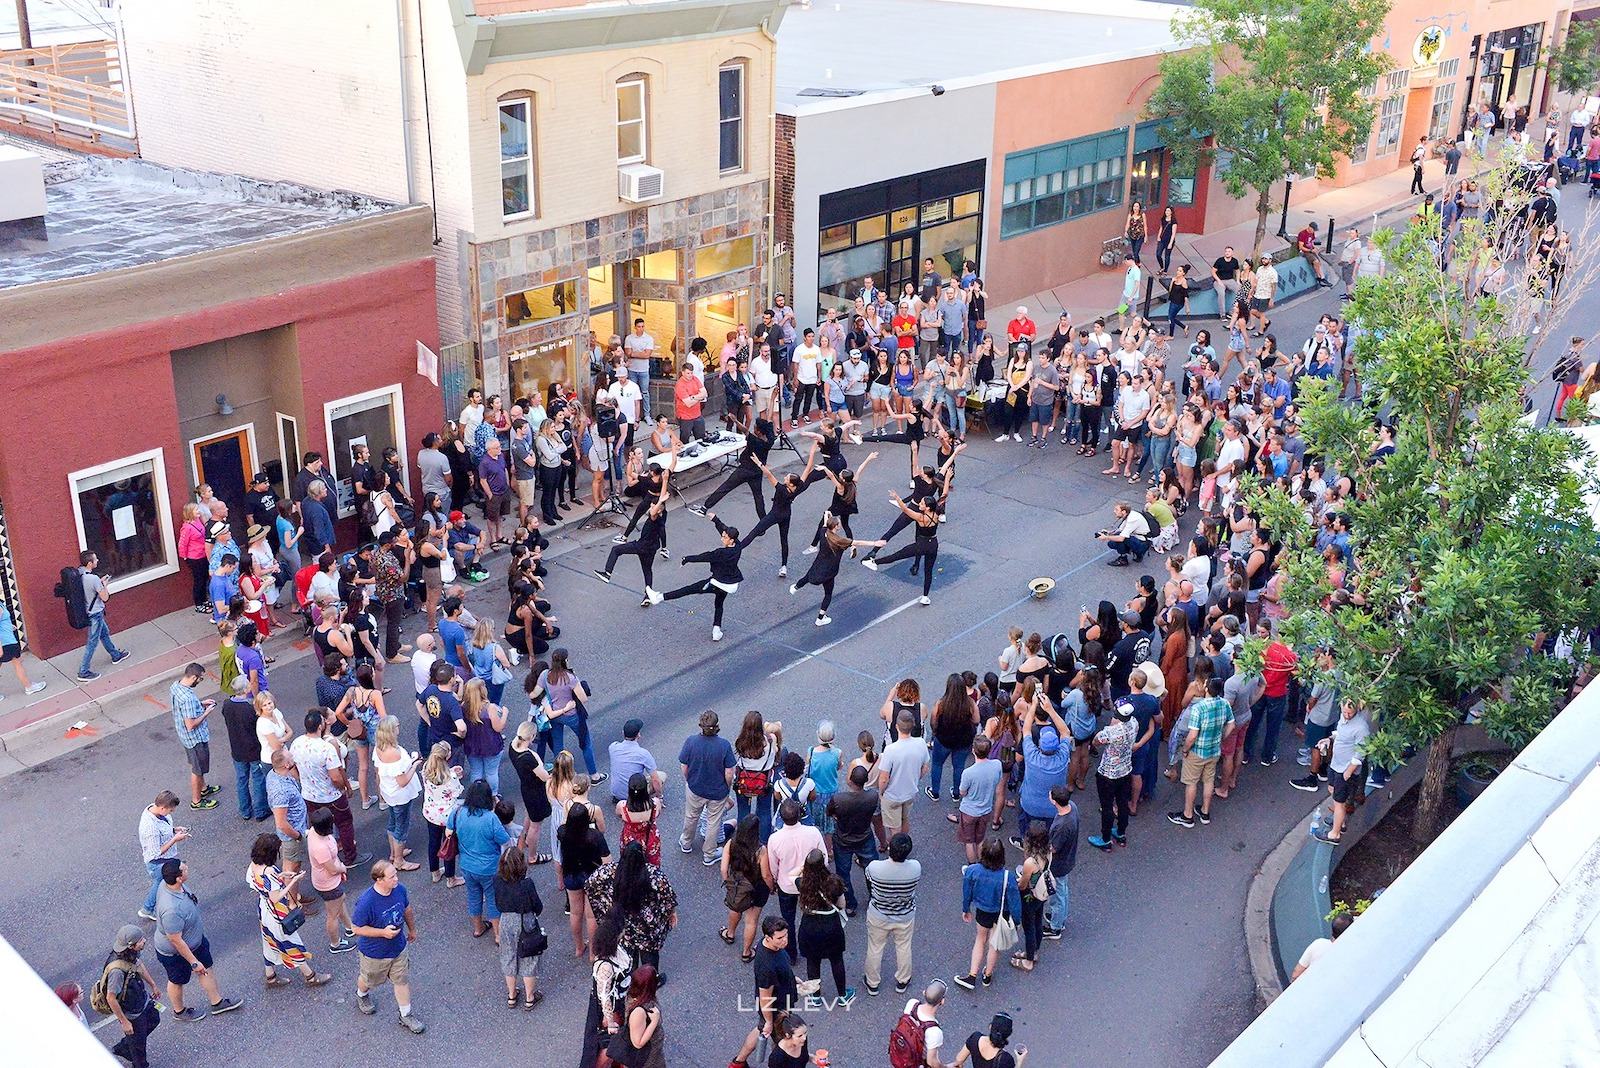 Image of people watching a dance performance at the Art District on Santa Fe in Denver, Colorado